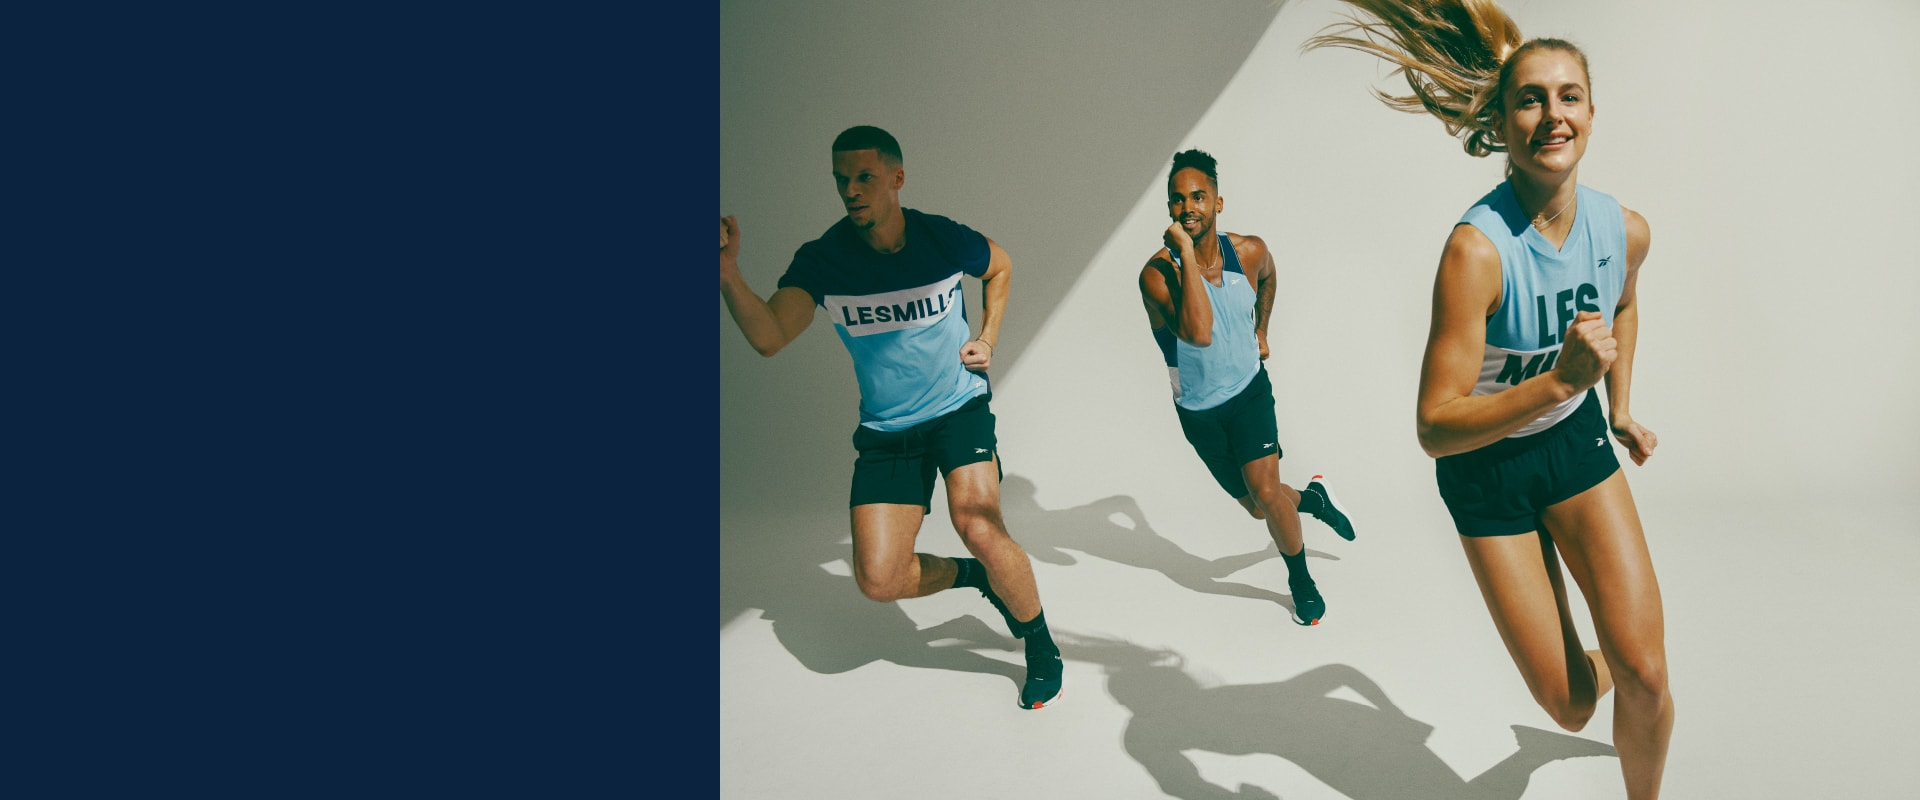 LESMILLS SPECIAL CAMPAIGN